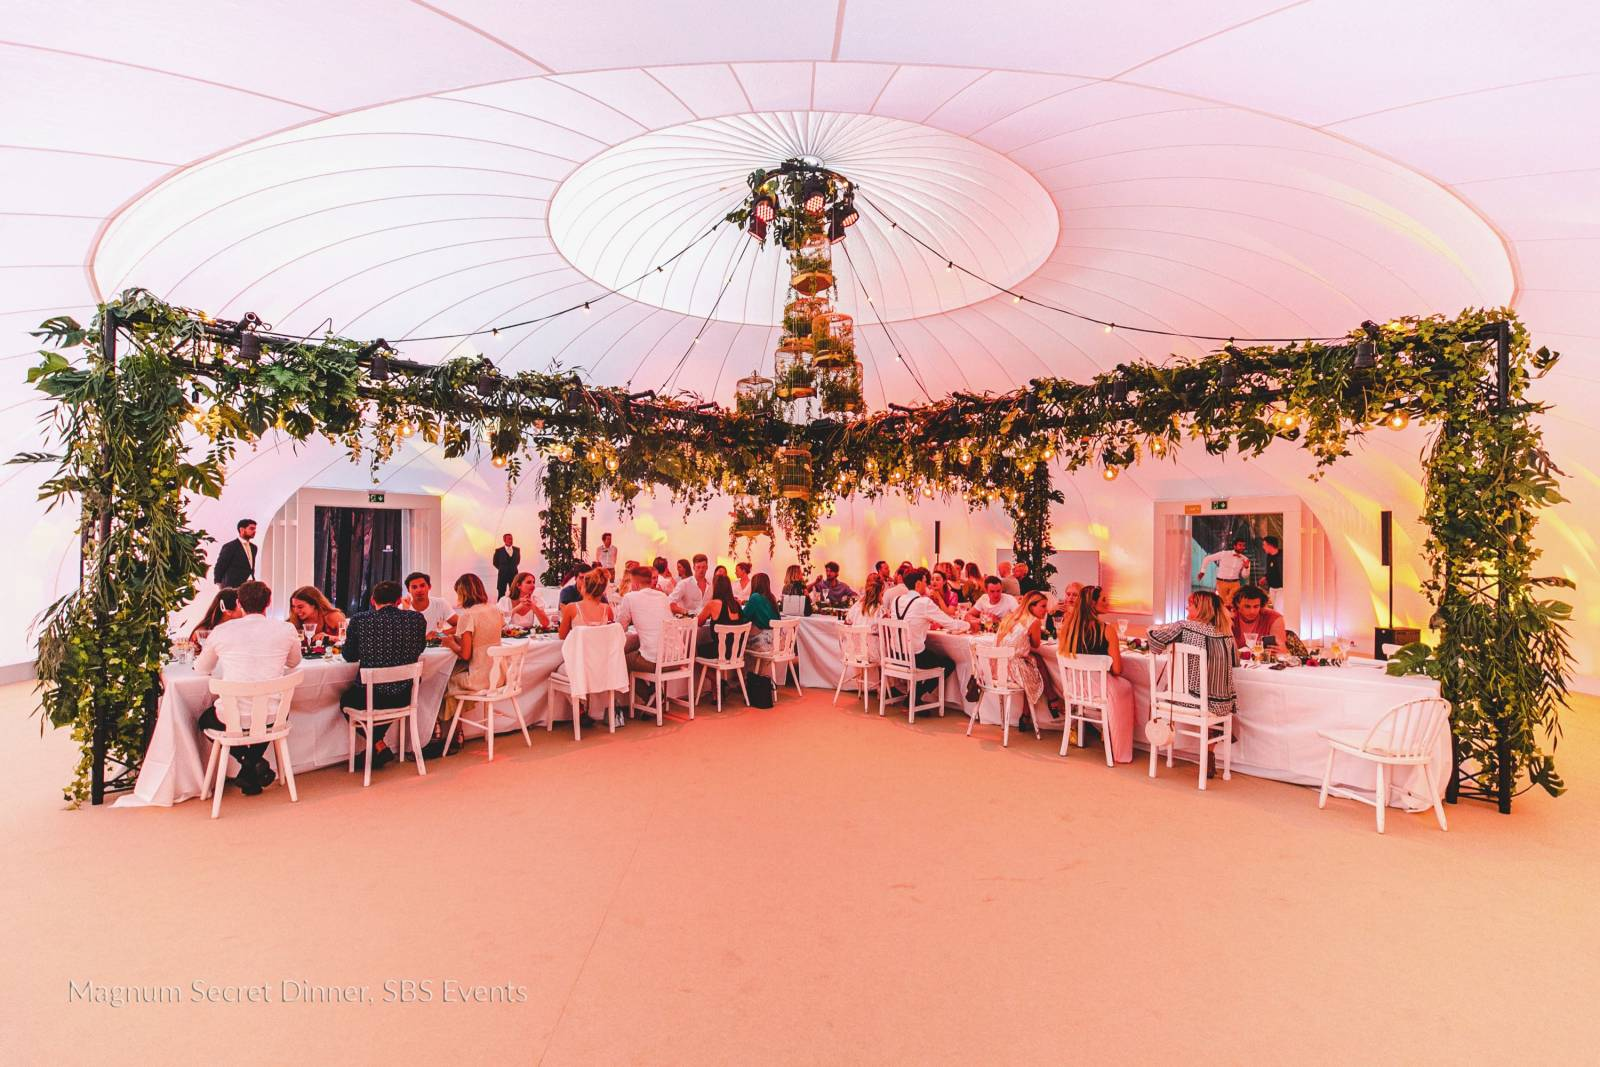 Insphere - Indoor Tent - Dome - House of Weddings - Events - 4